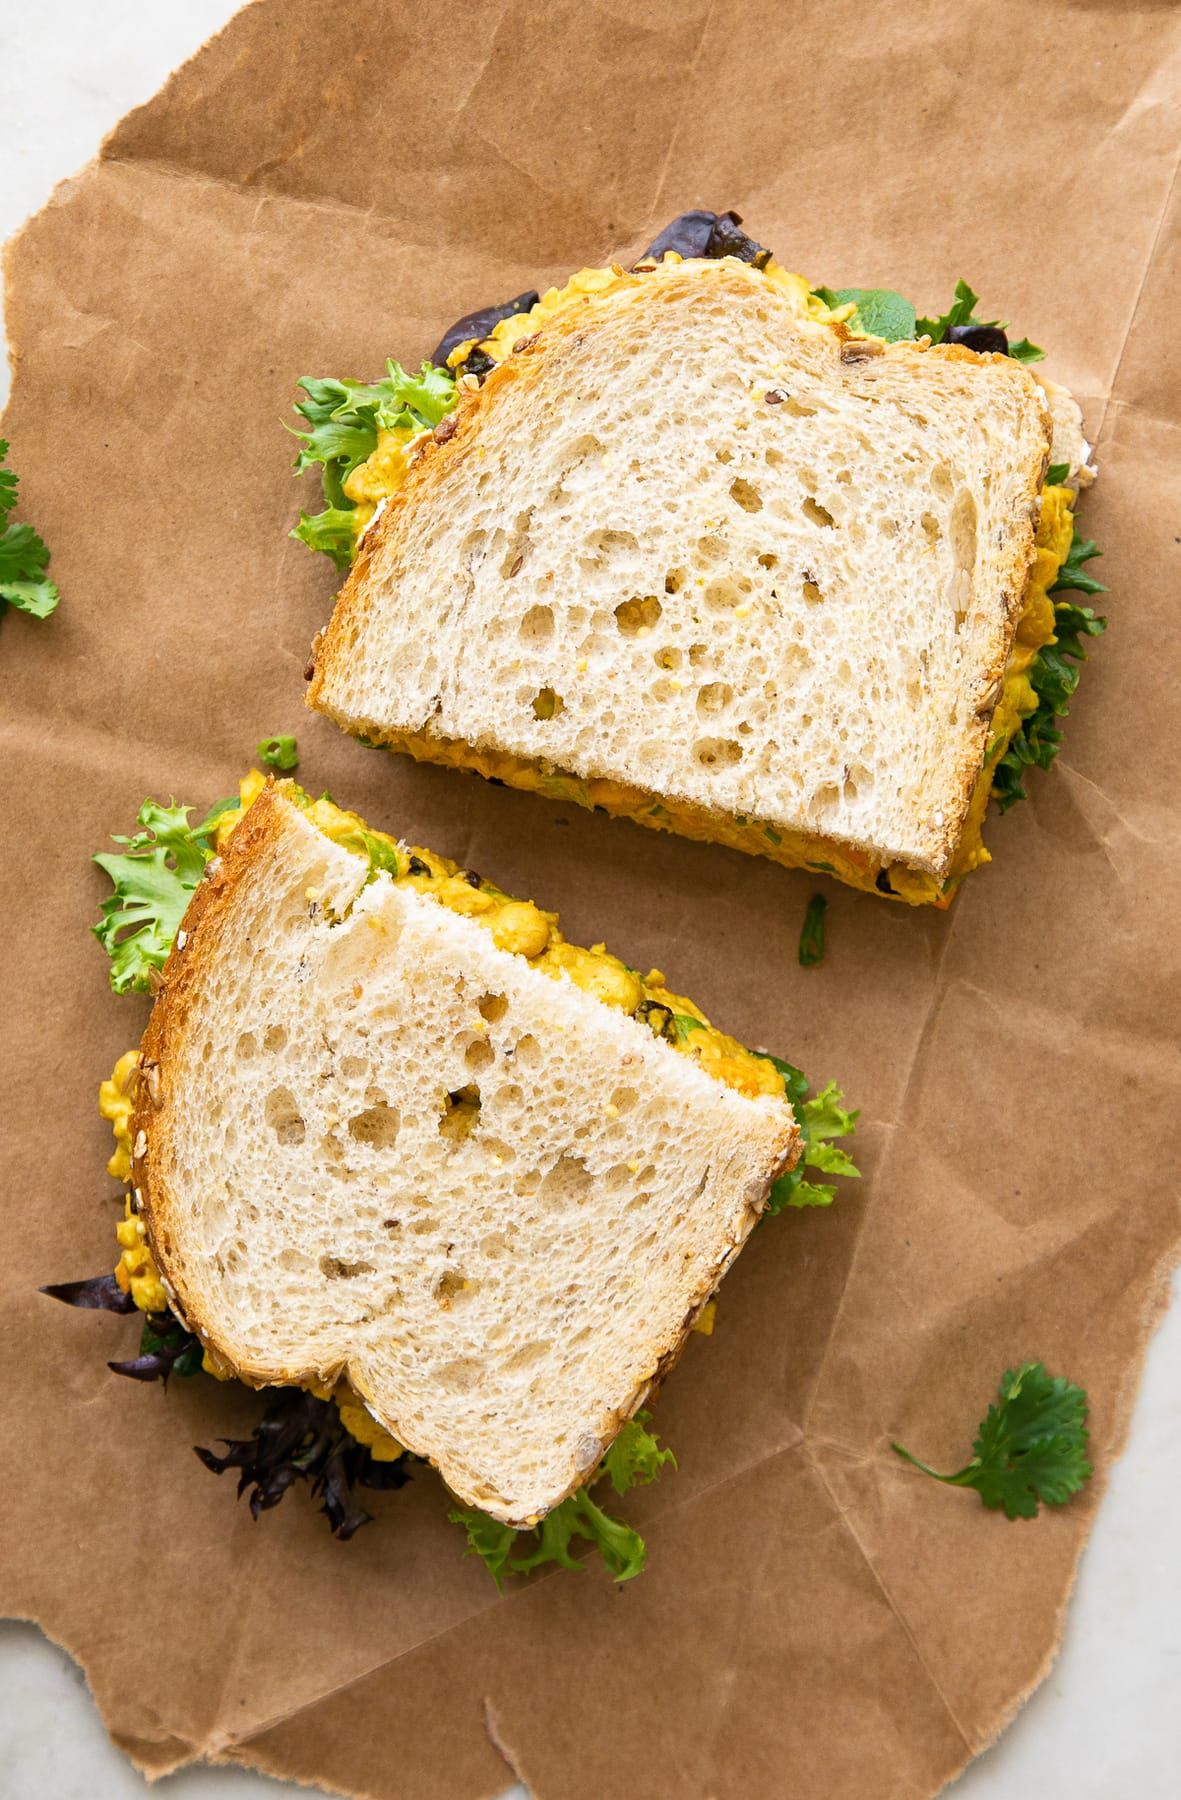 top down view of curried chickpea salad sandwich sliced in half on flat surface.